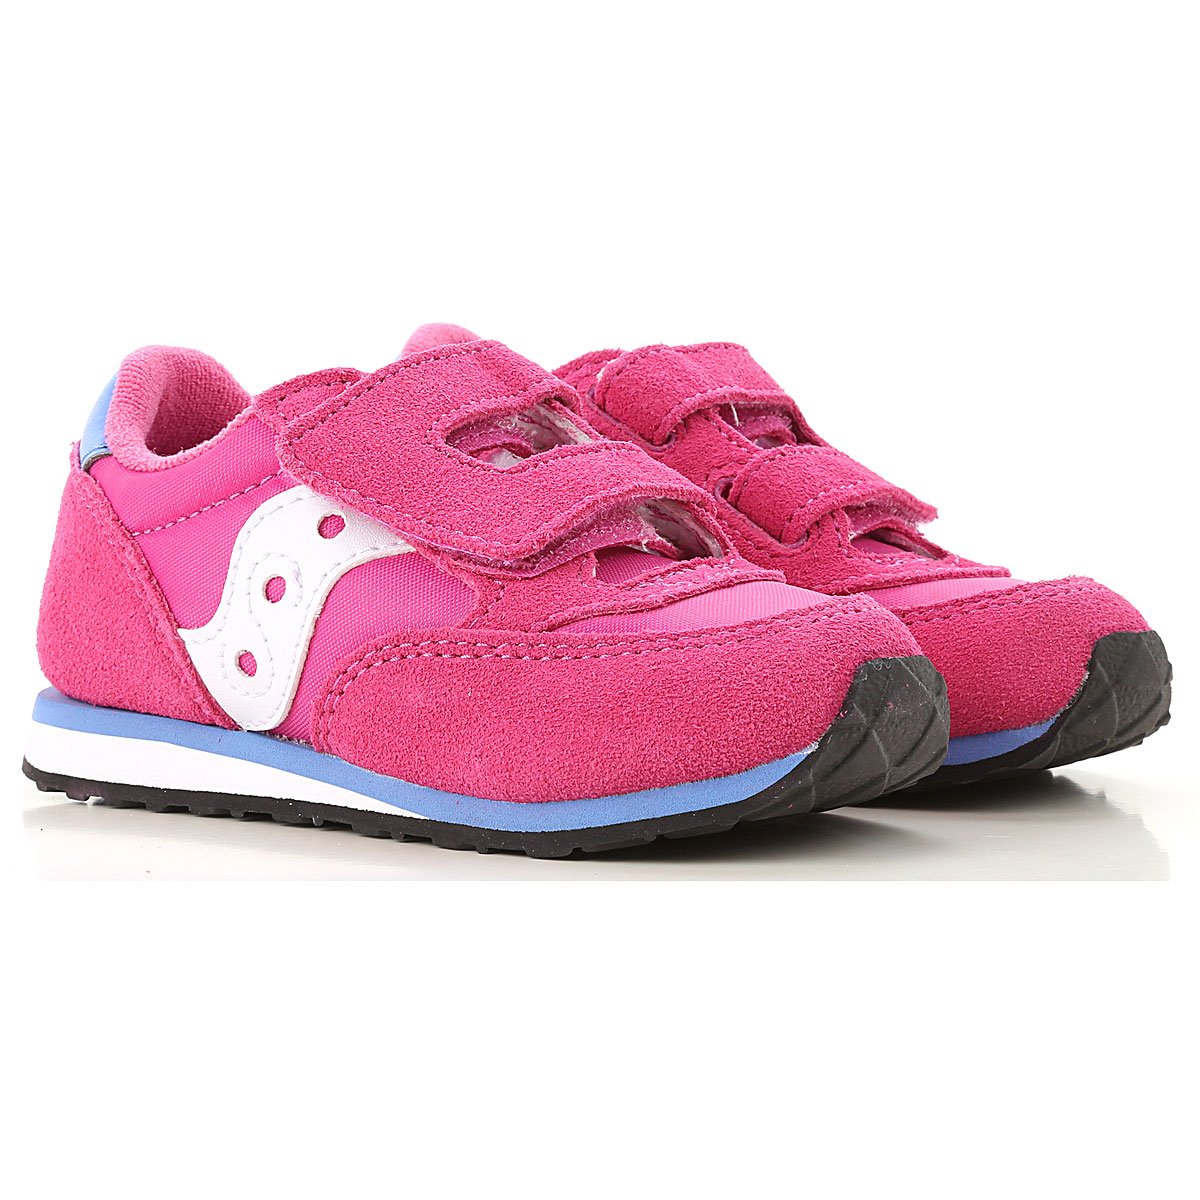 Image of Saucony Kids Shoes for Girls, Fuchsia, Suede leather, 2017, 22 23 24 25 26